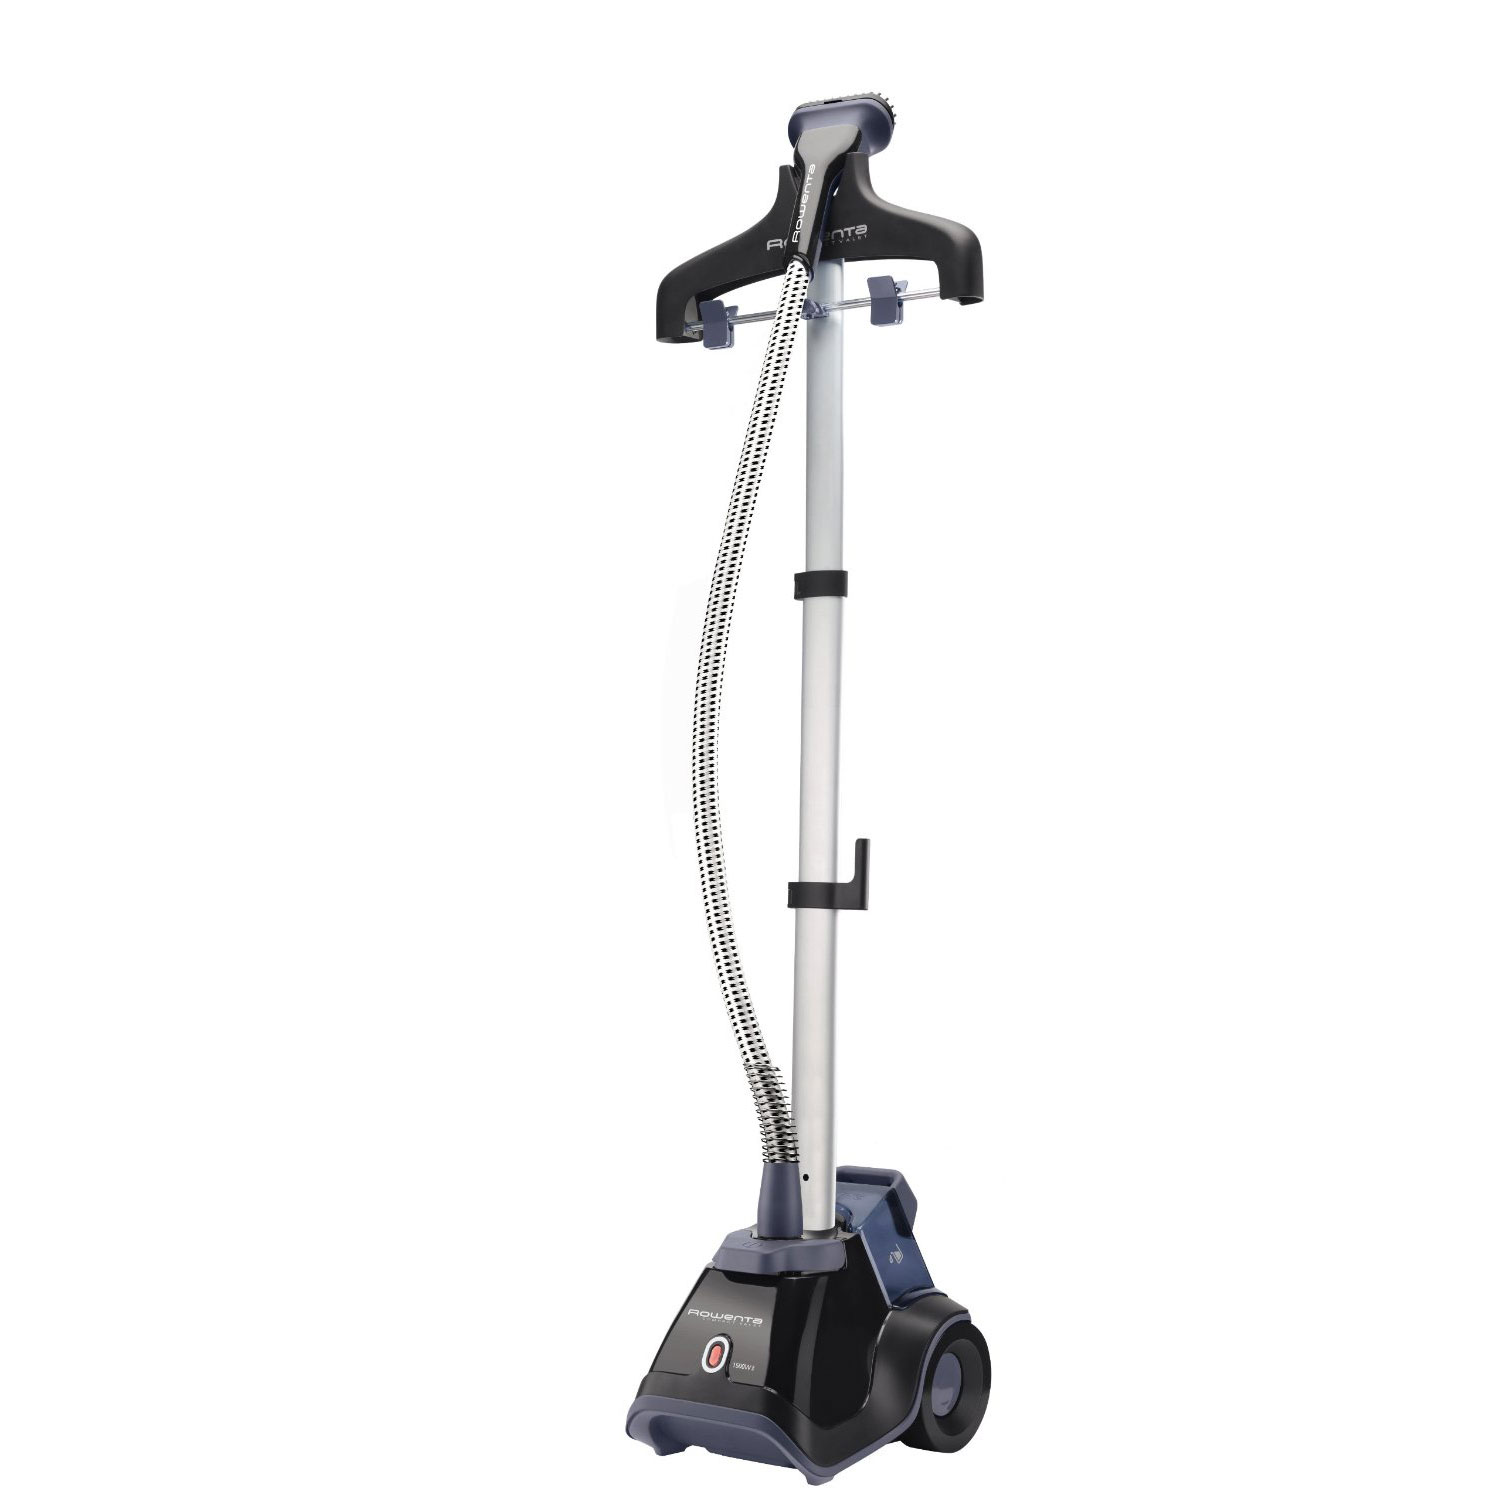 Rowenta IS6200 Compact Valet Clothes Steamer